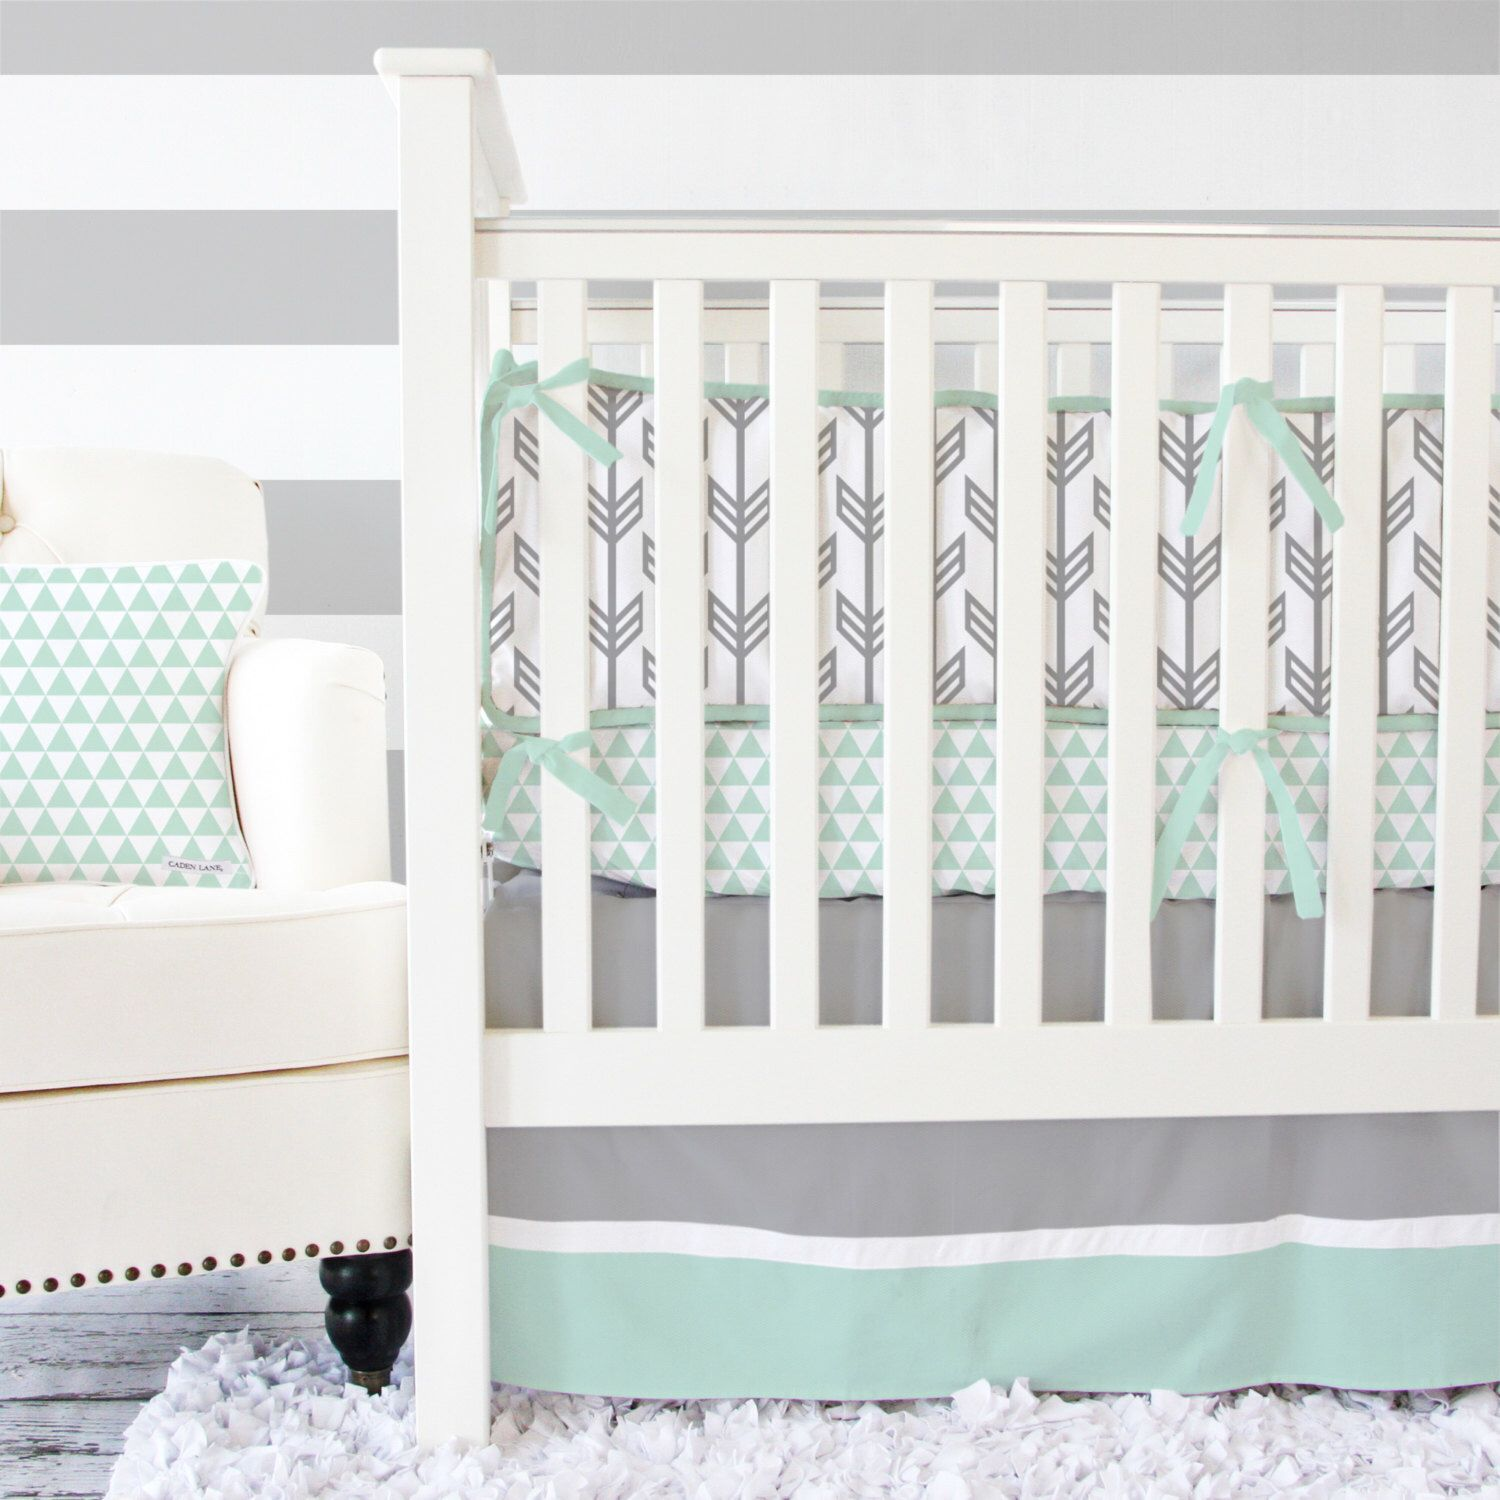 Your Mint Gray Arrow Crib Bedding Set By Caden Lane Here Make Nursery Unforgettable With The Stylishly Over Top Sets From